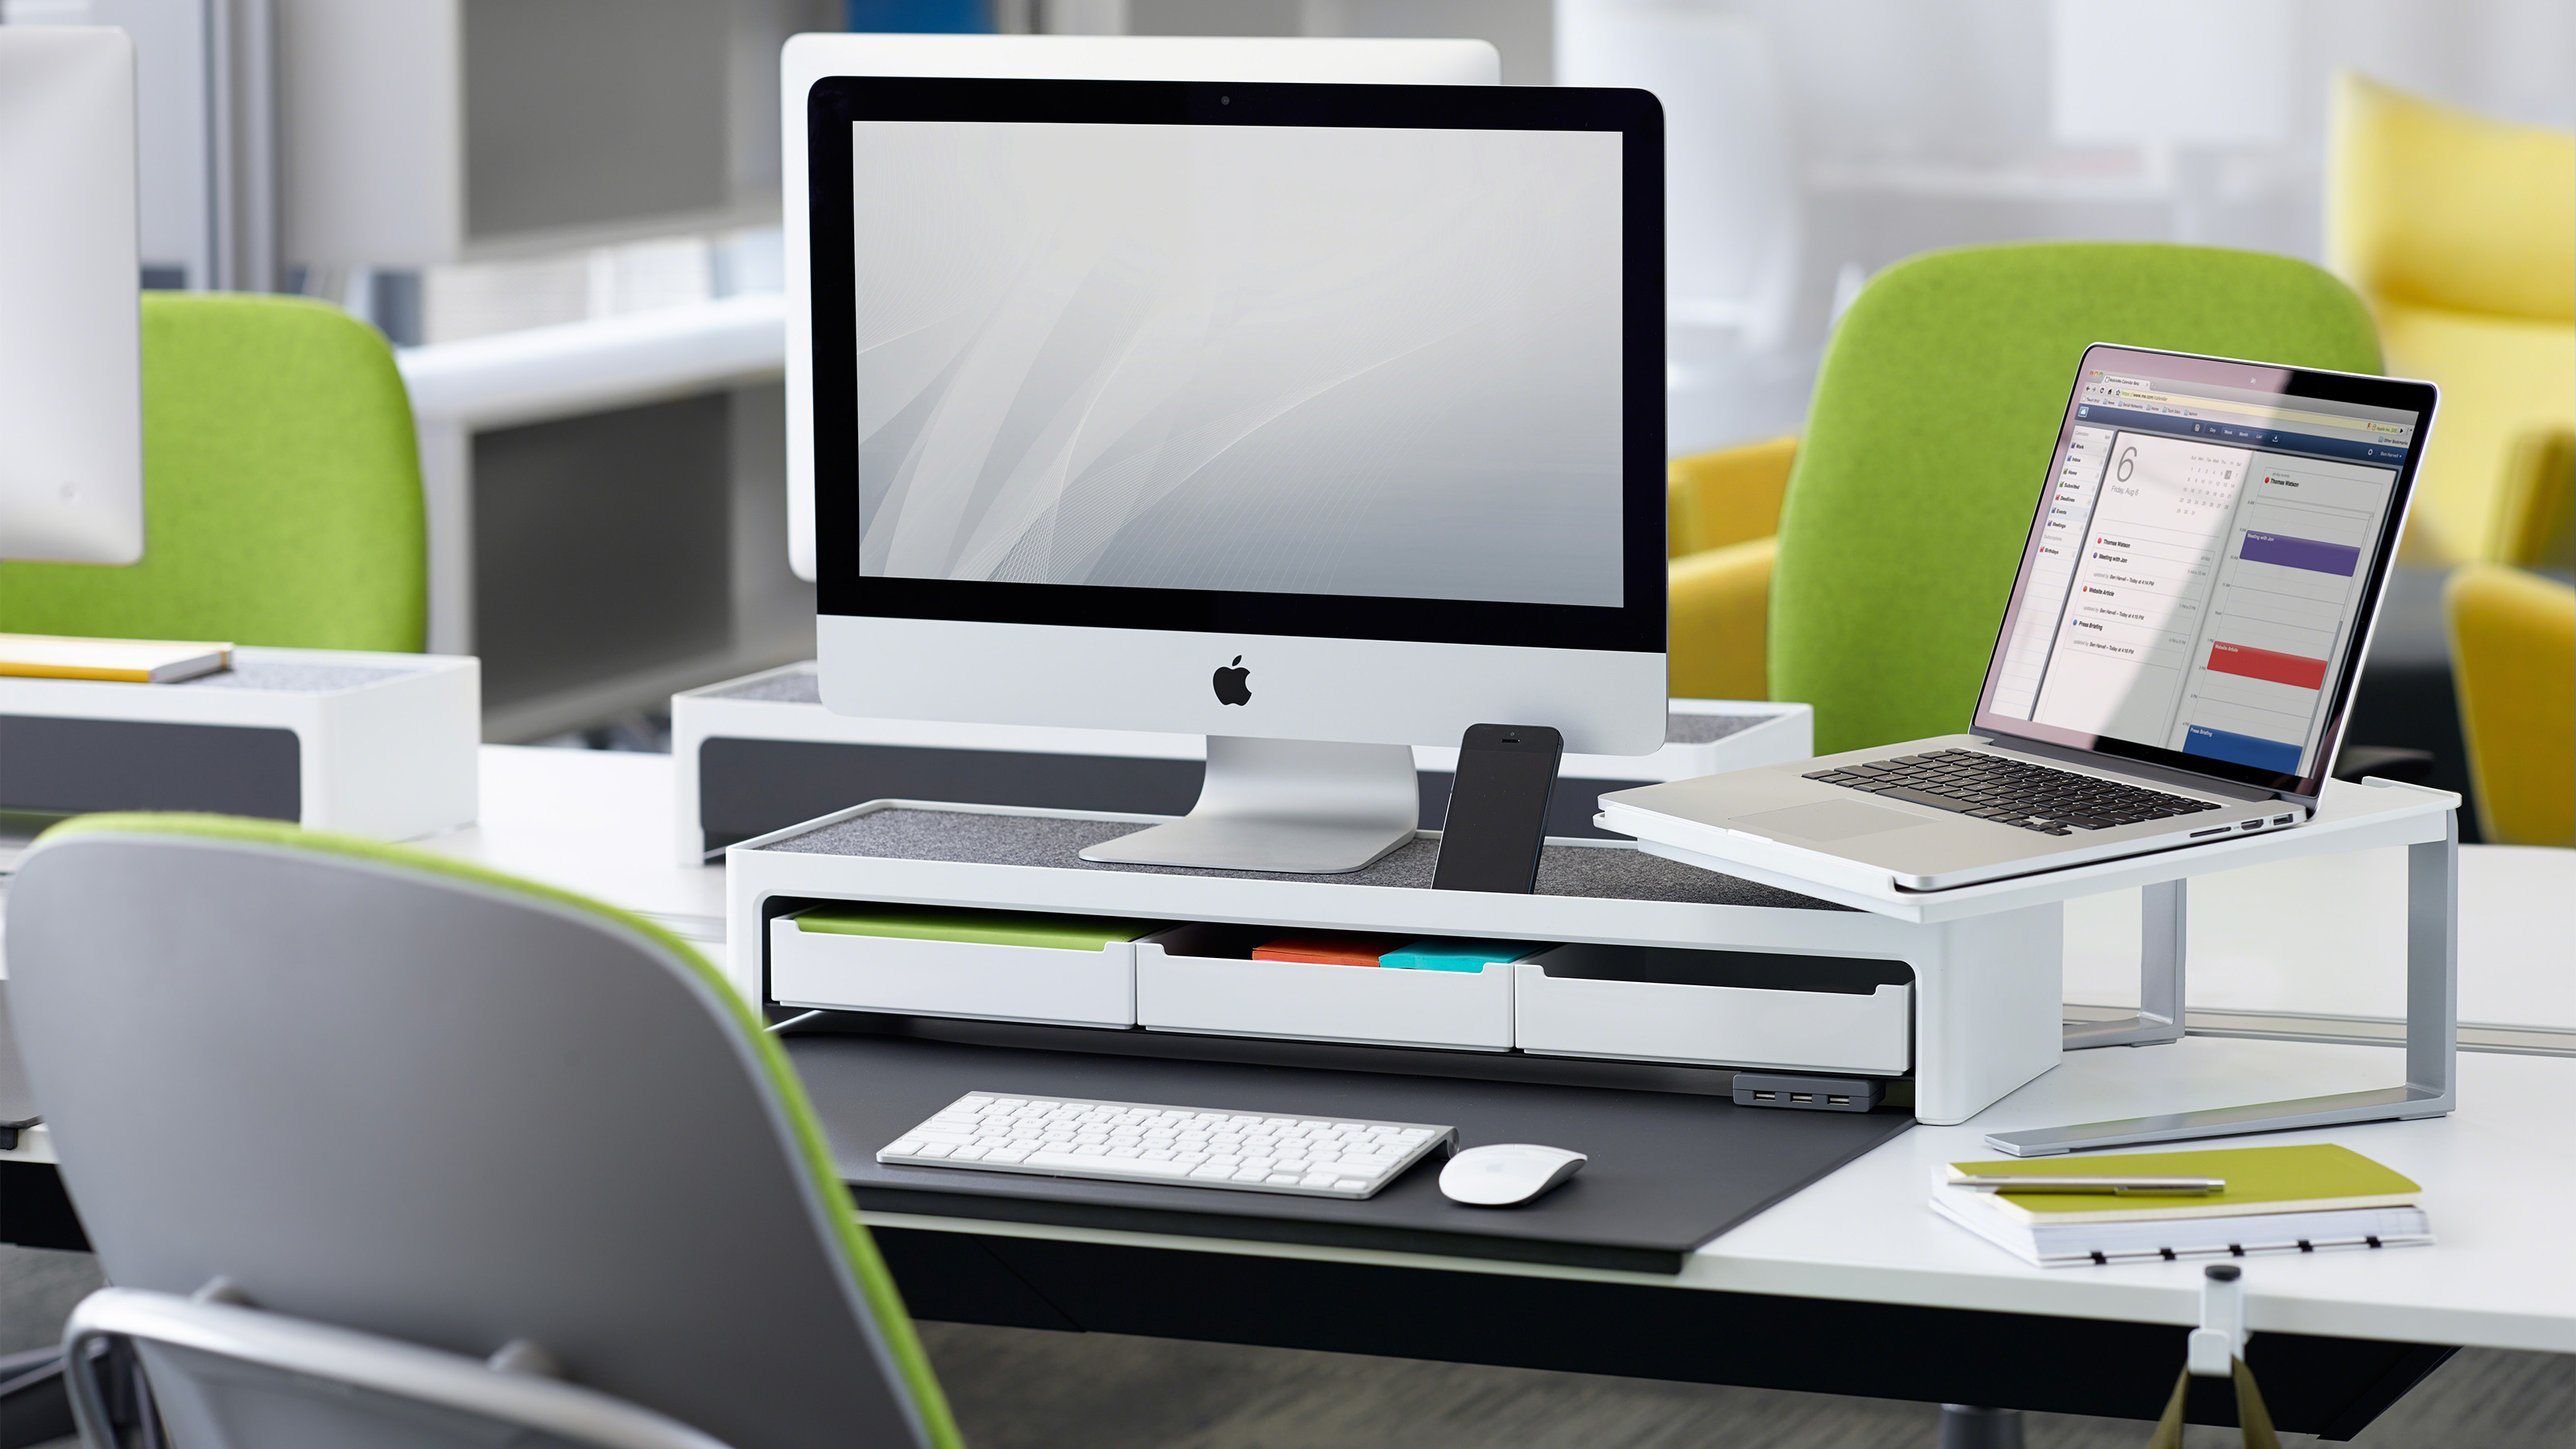 soto ii desk office organization and power accessories